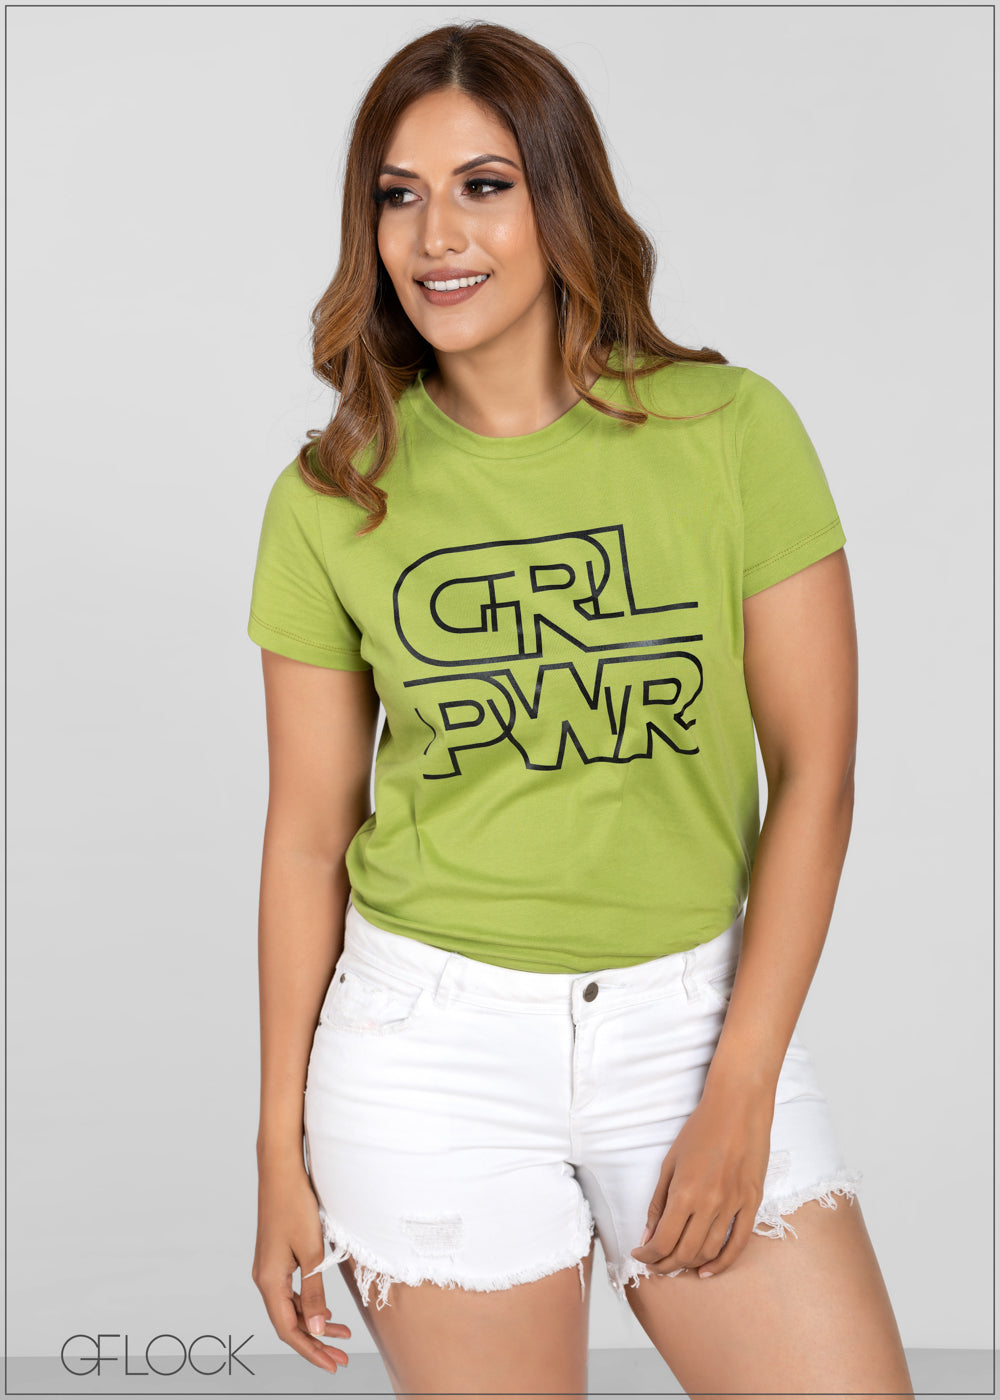 Girl Power Tee - GFLOCK.LK